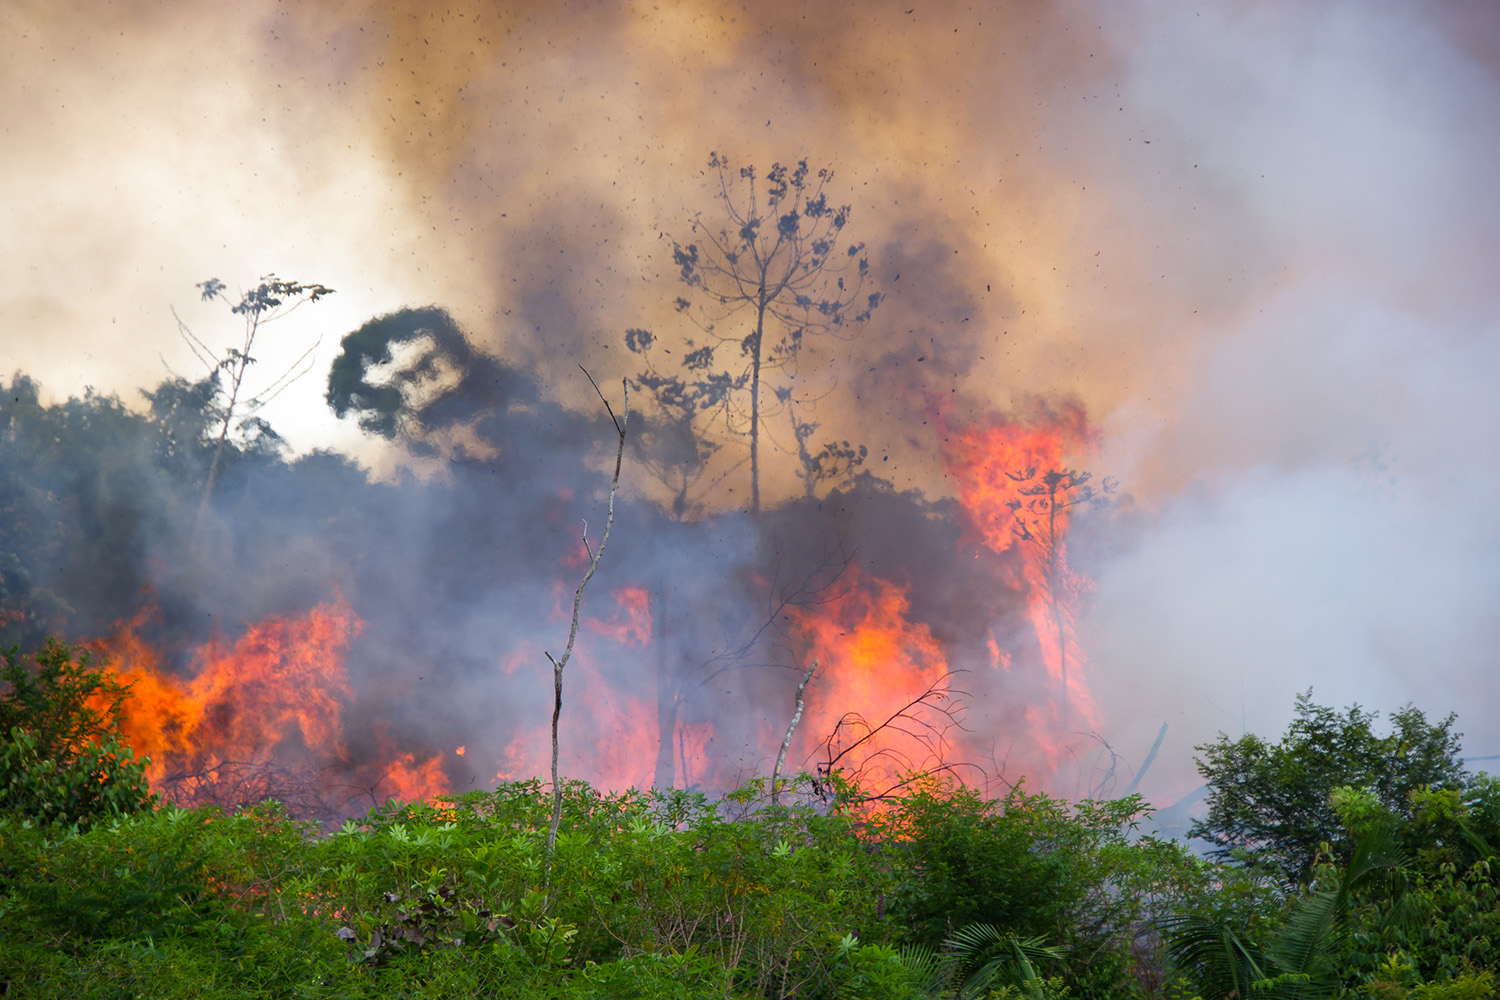 Brazilian Amazon Forest burning to open space for pasture (iStock/PA)